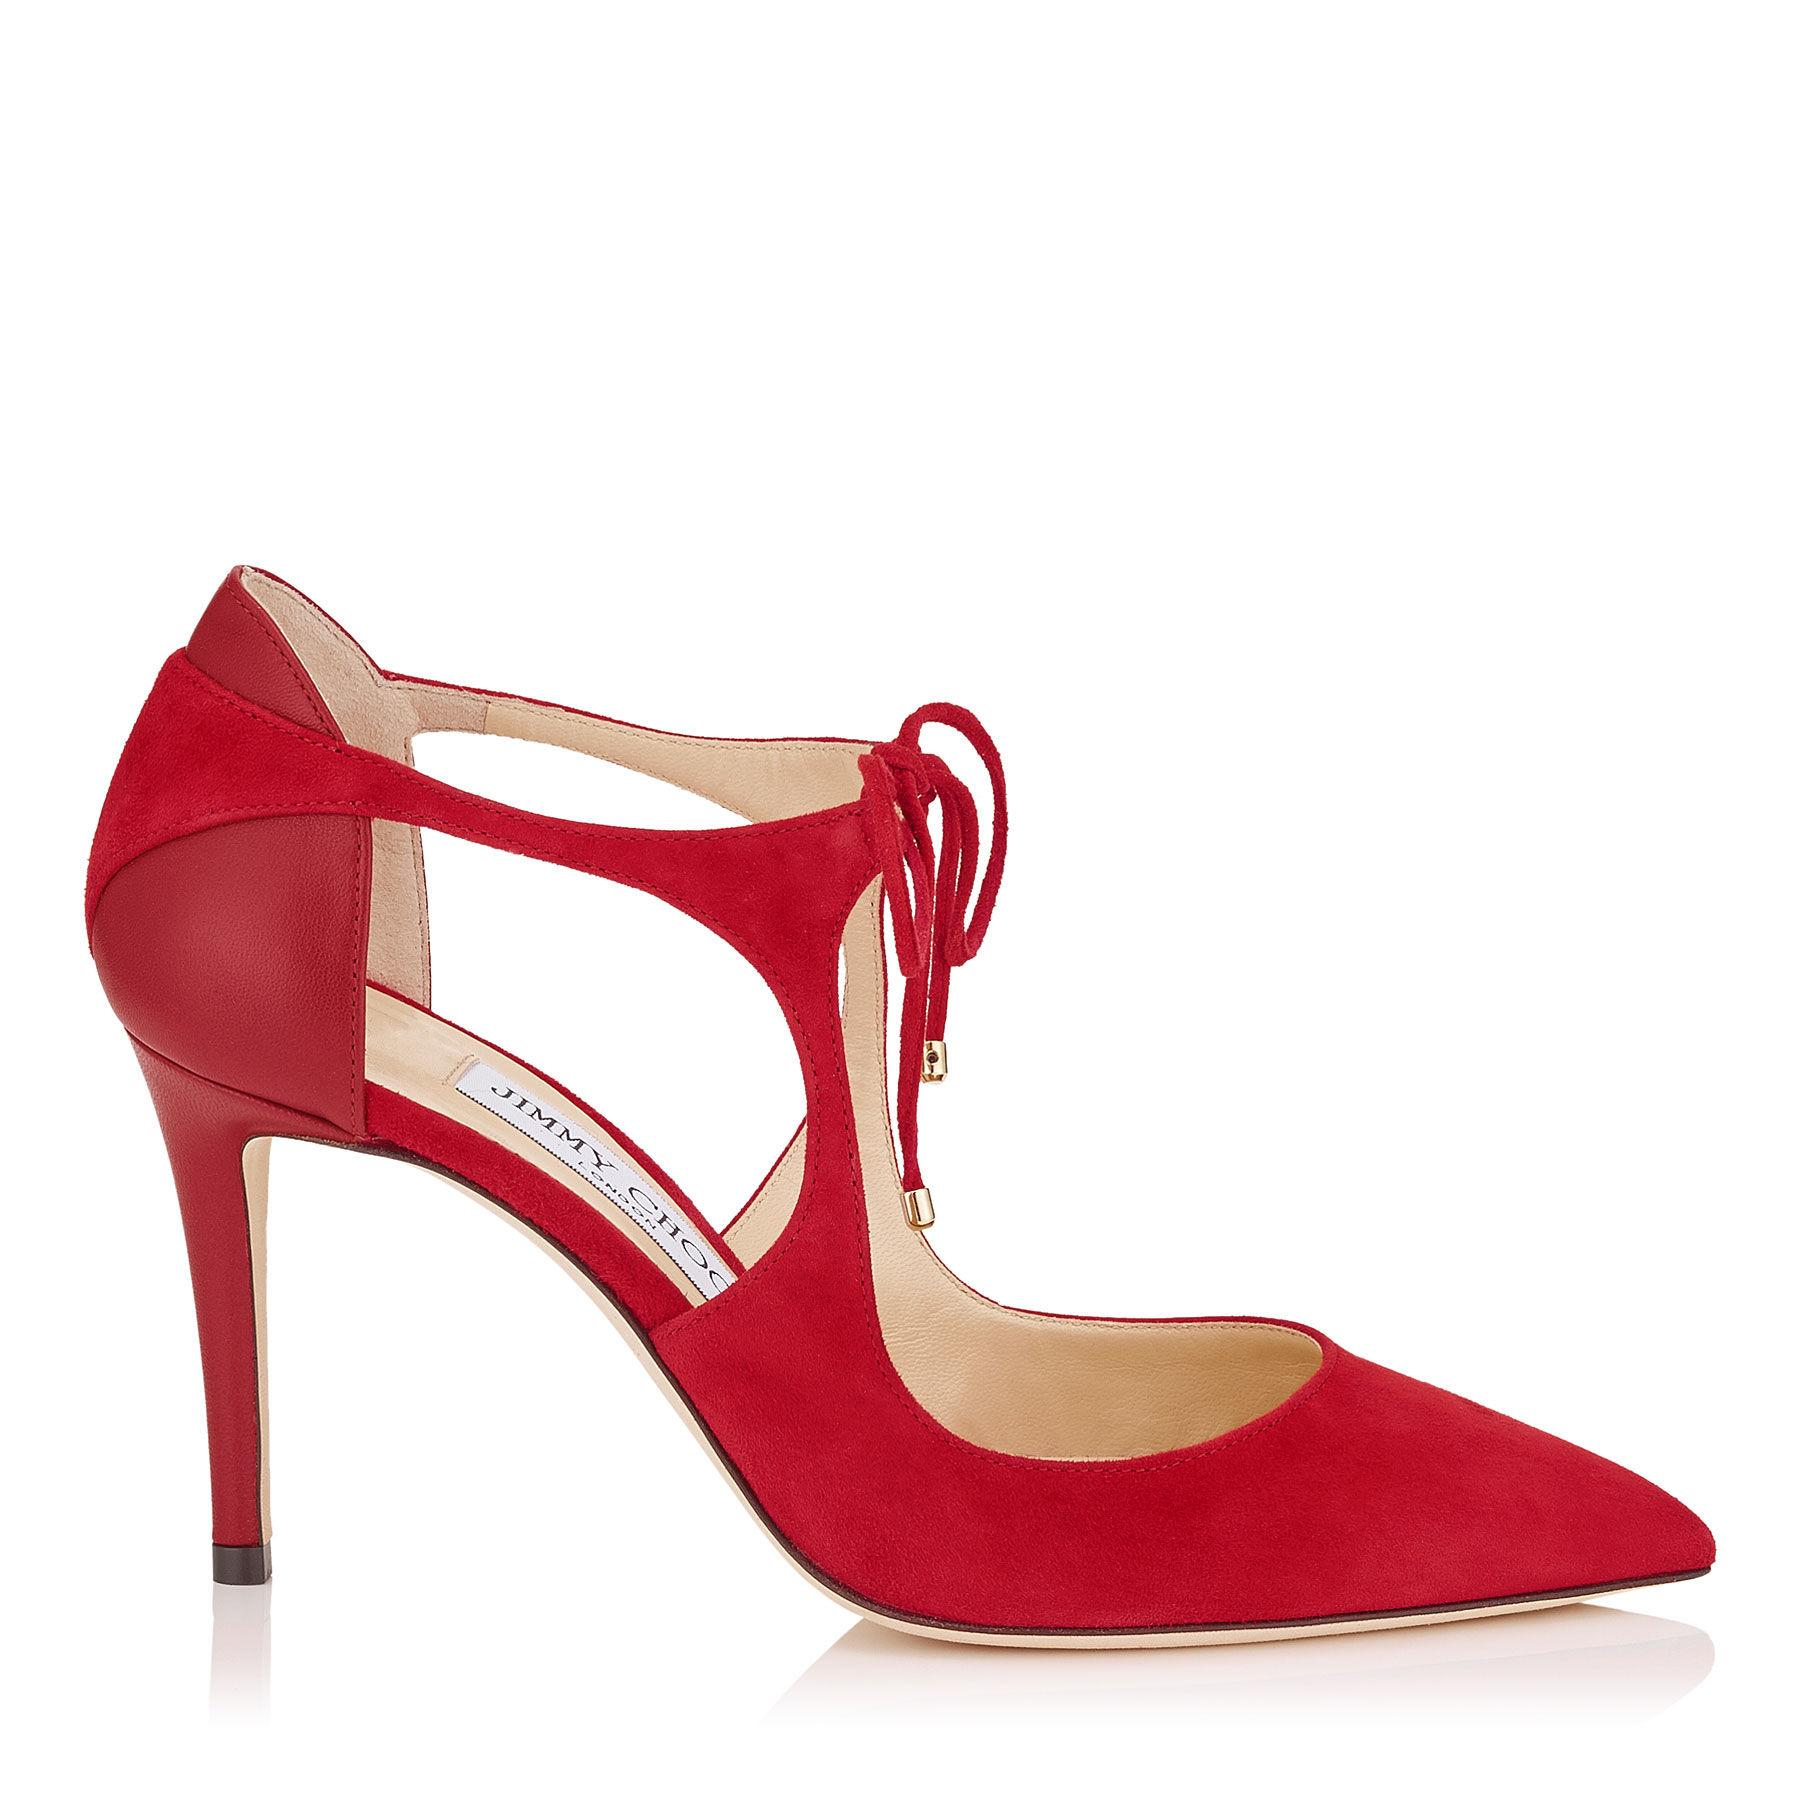 f9bf0065a4903 jimmy choo lace pumps red florals - Ecosia